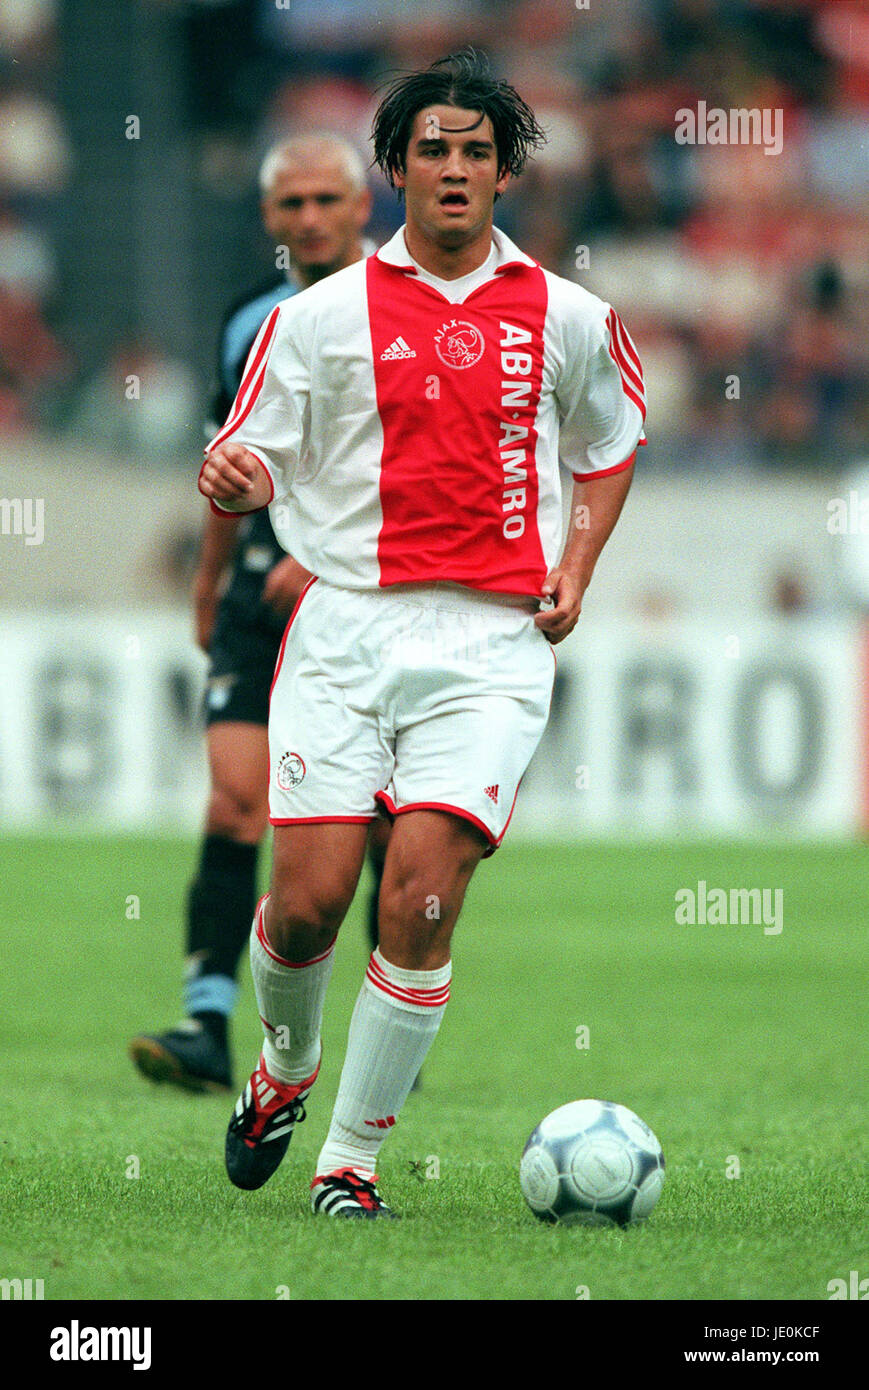 Cristian chivu ajax fc amsterdam amsterdam holland 03 august 2000 cristian chivu ajax fc amsterdam amsterdam holland 03 august 2000 thecheapjerseys Image collections